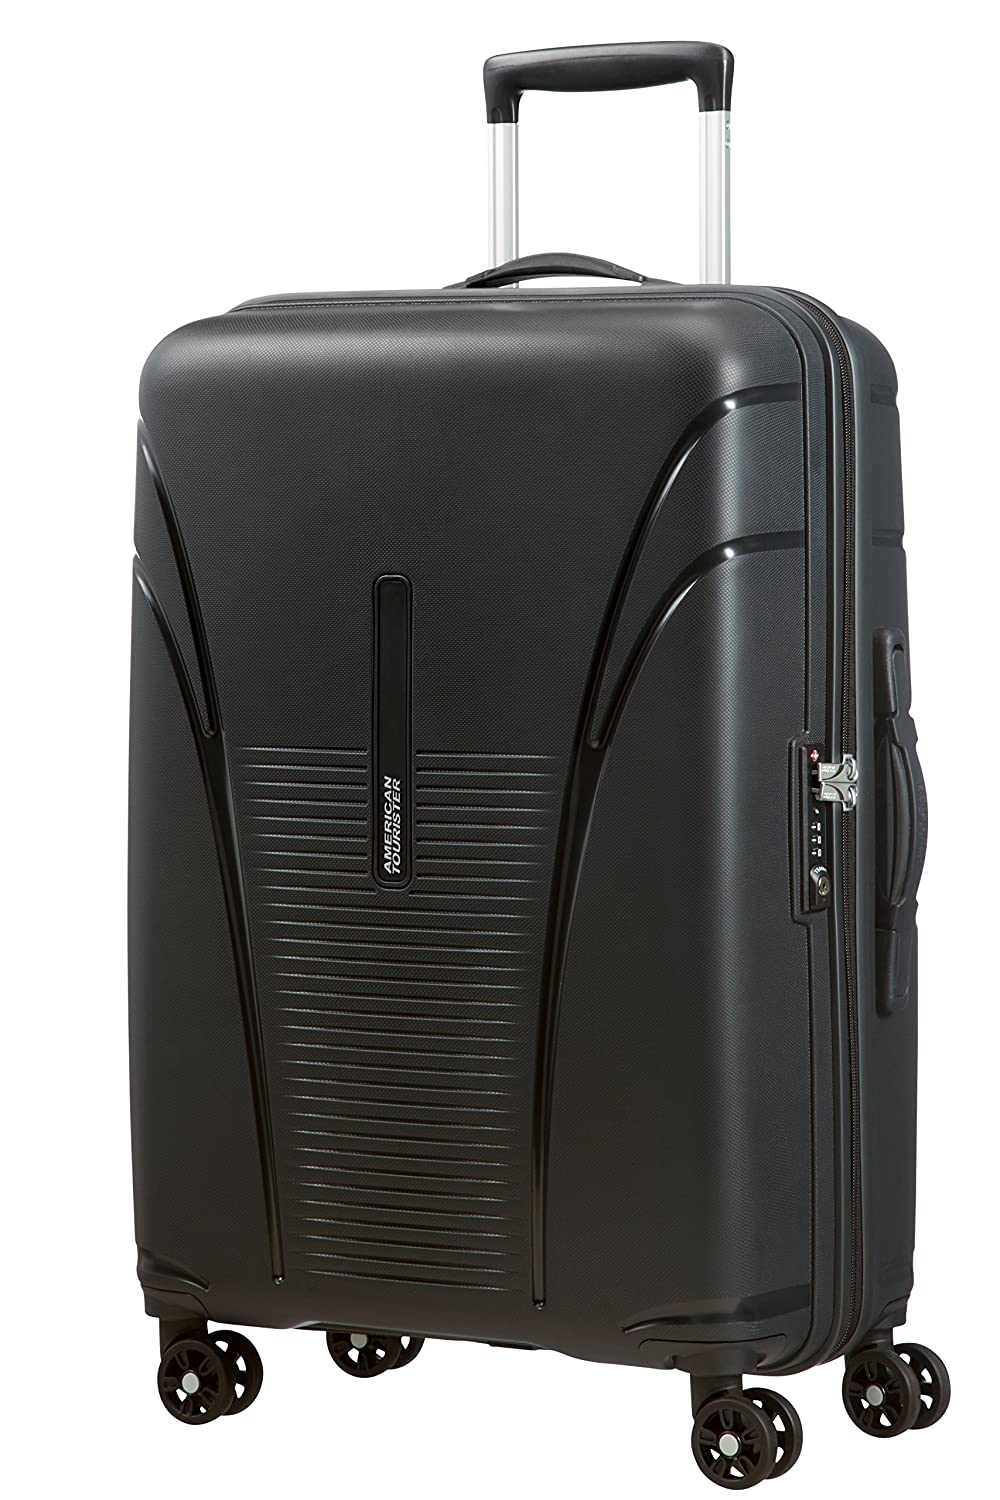 Maleta American Tourister Skytracer Spinner opiniones